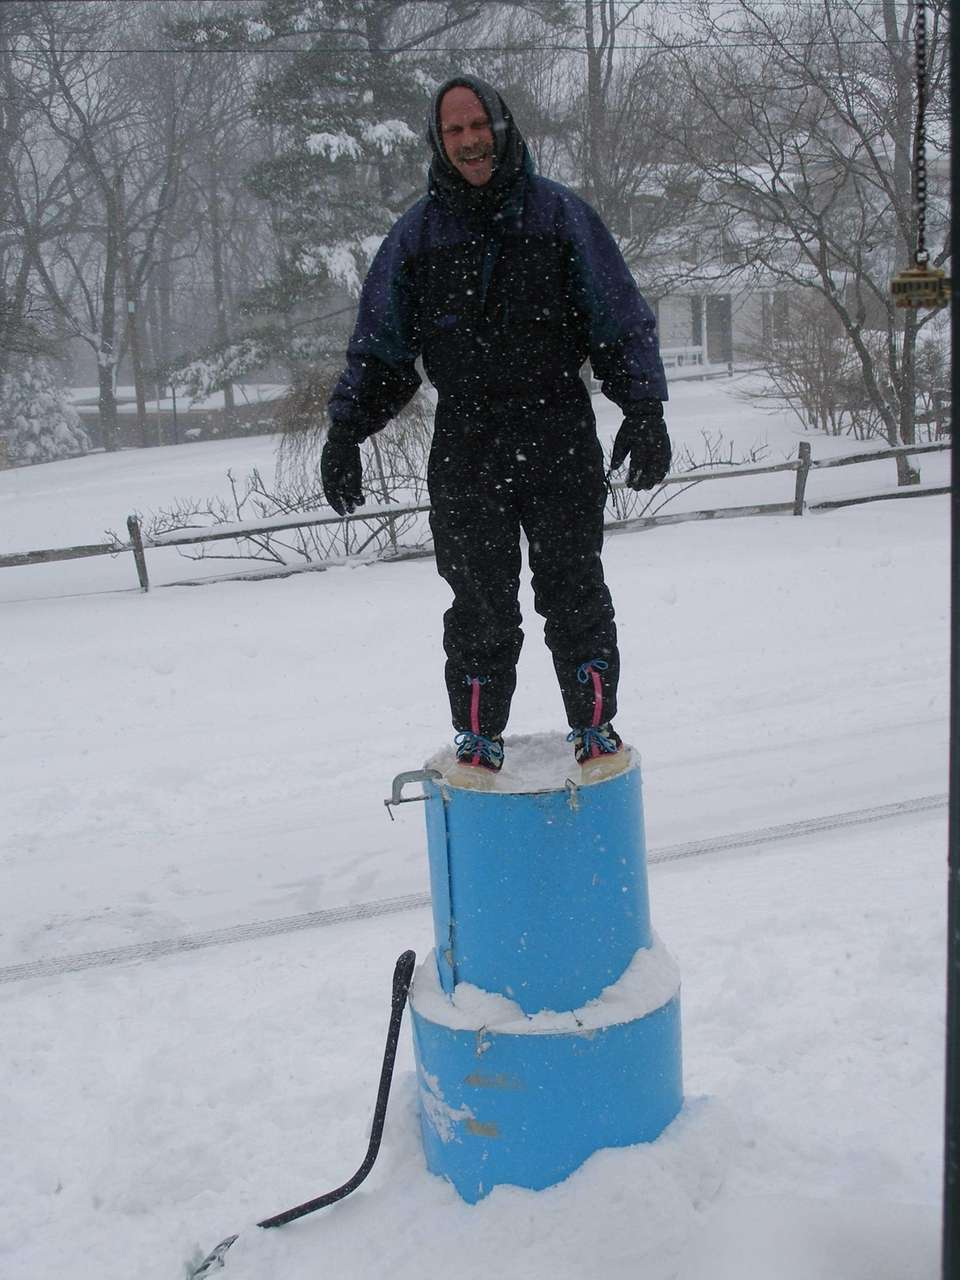 Plastic bins are great for packing snow in